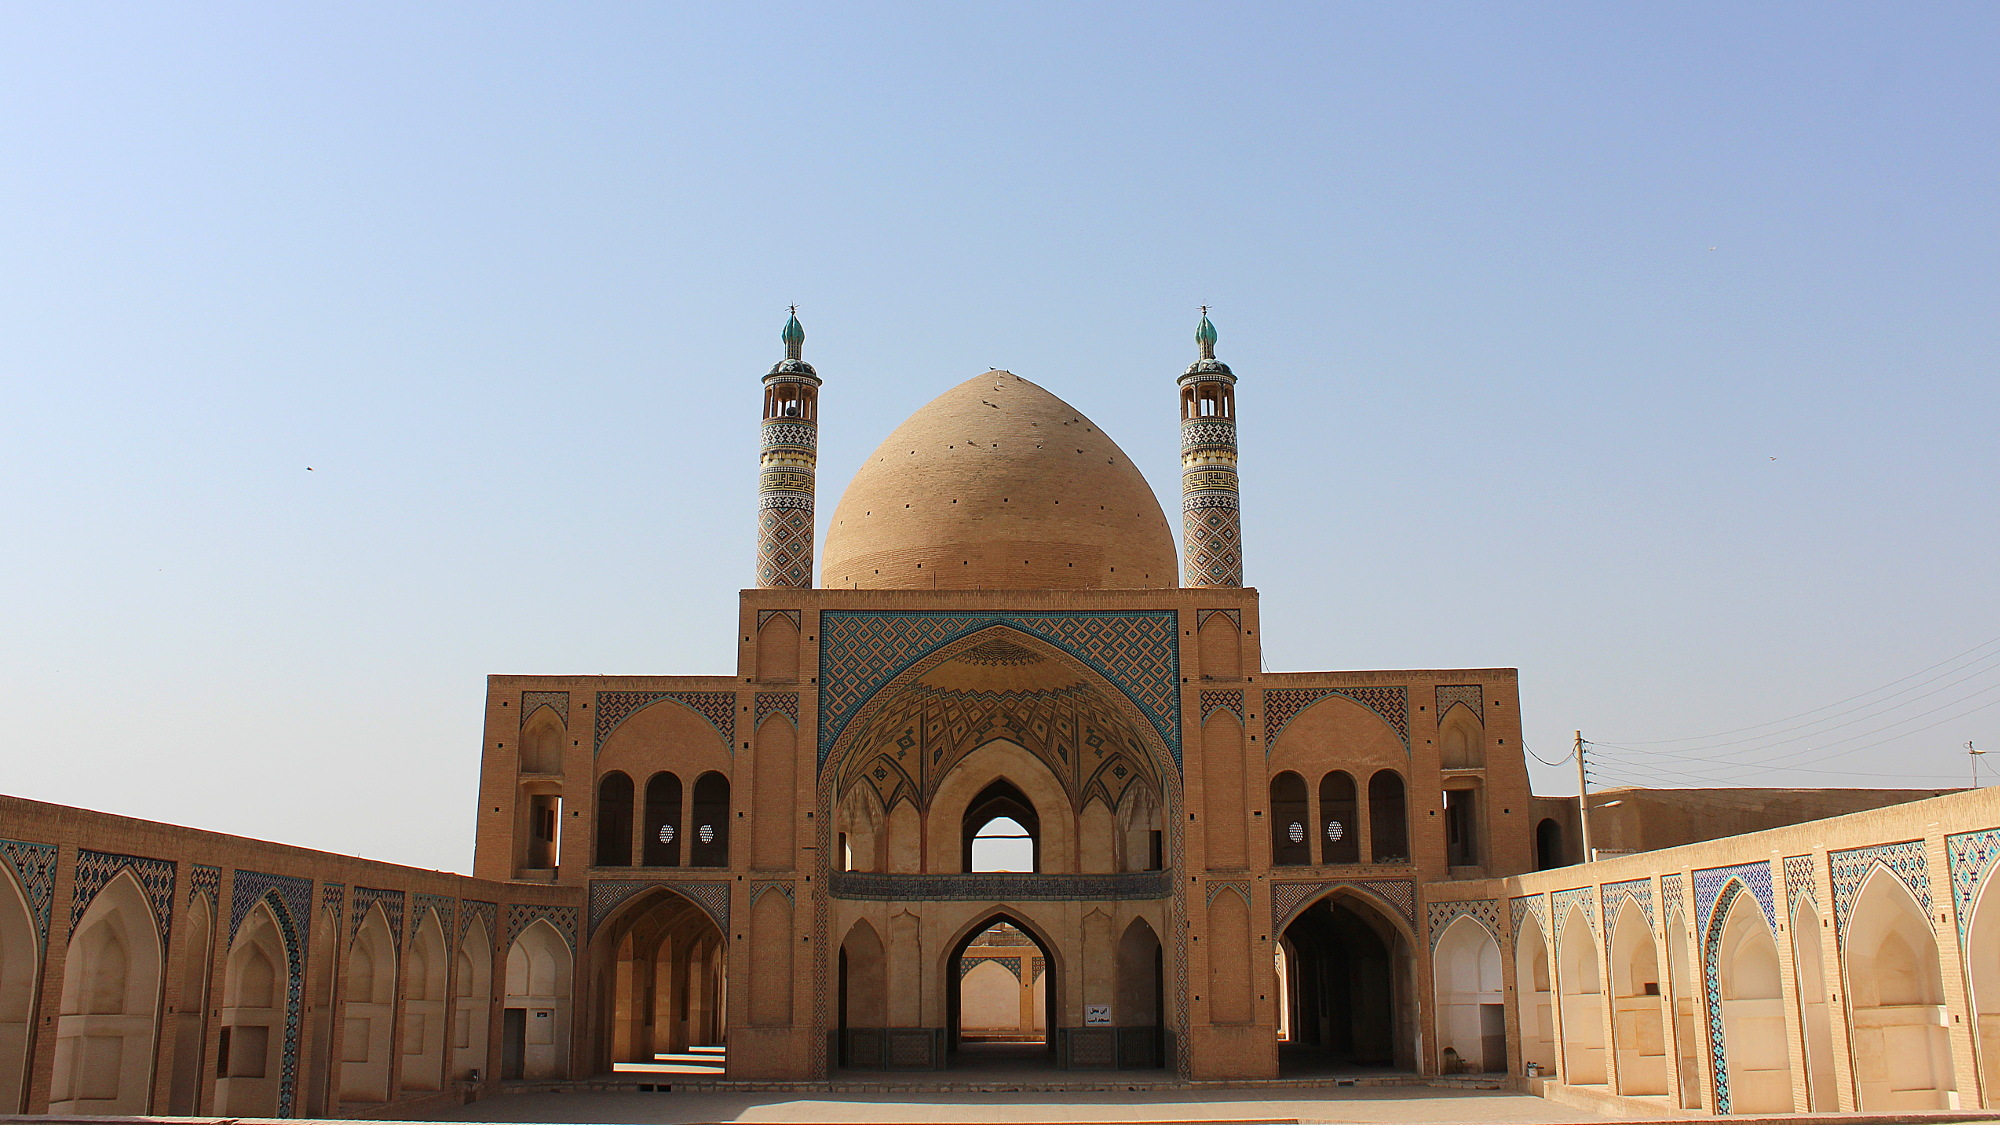 Agha Bozorg Mosque yard in Kashan, Iran.